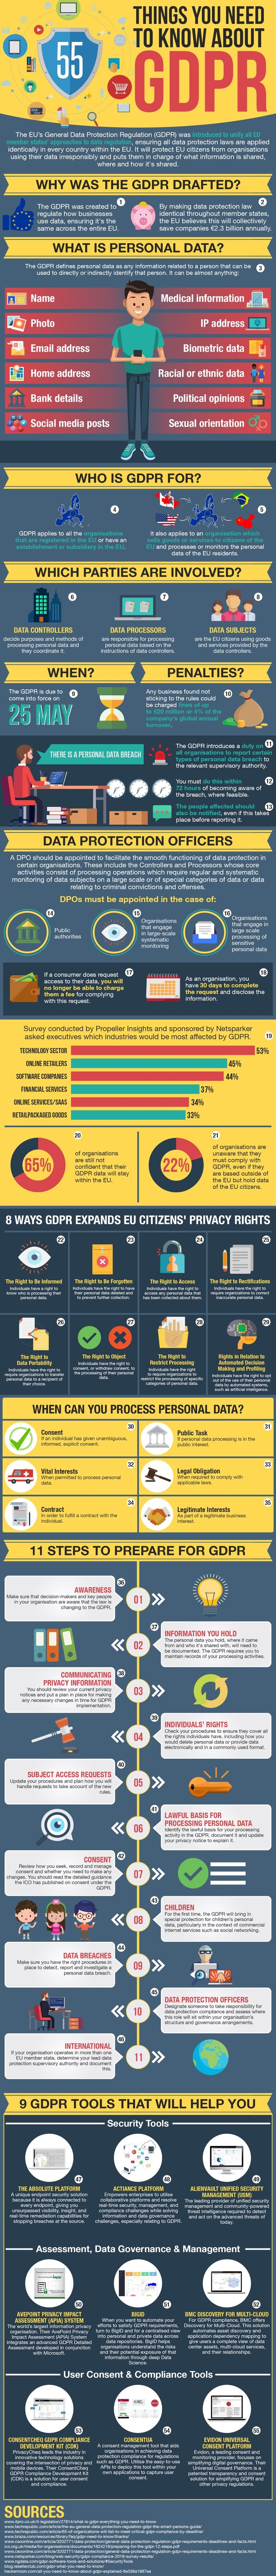 55 Things You Need to Know about GDPR